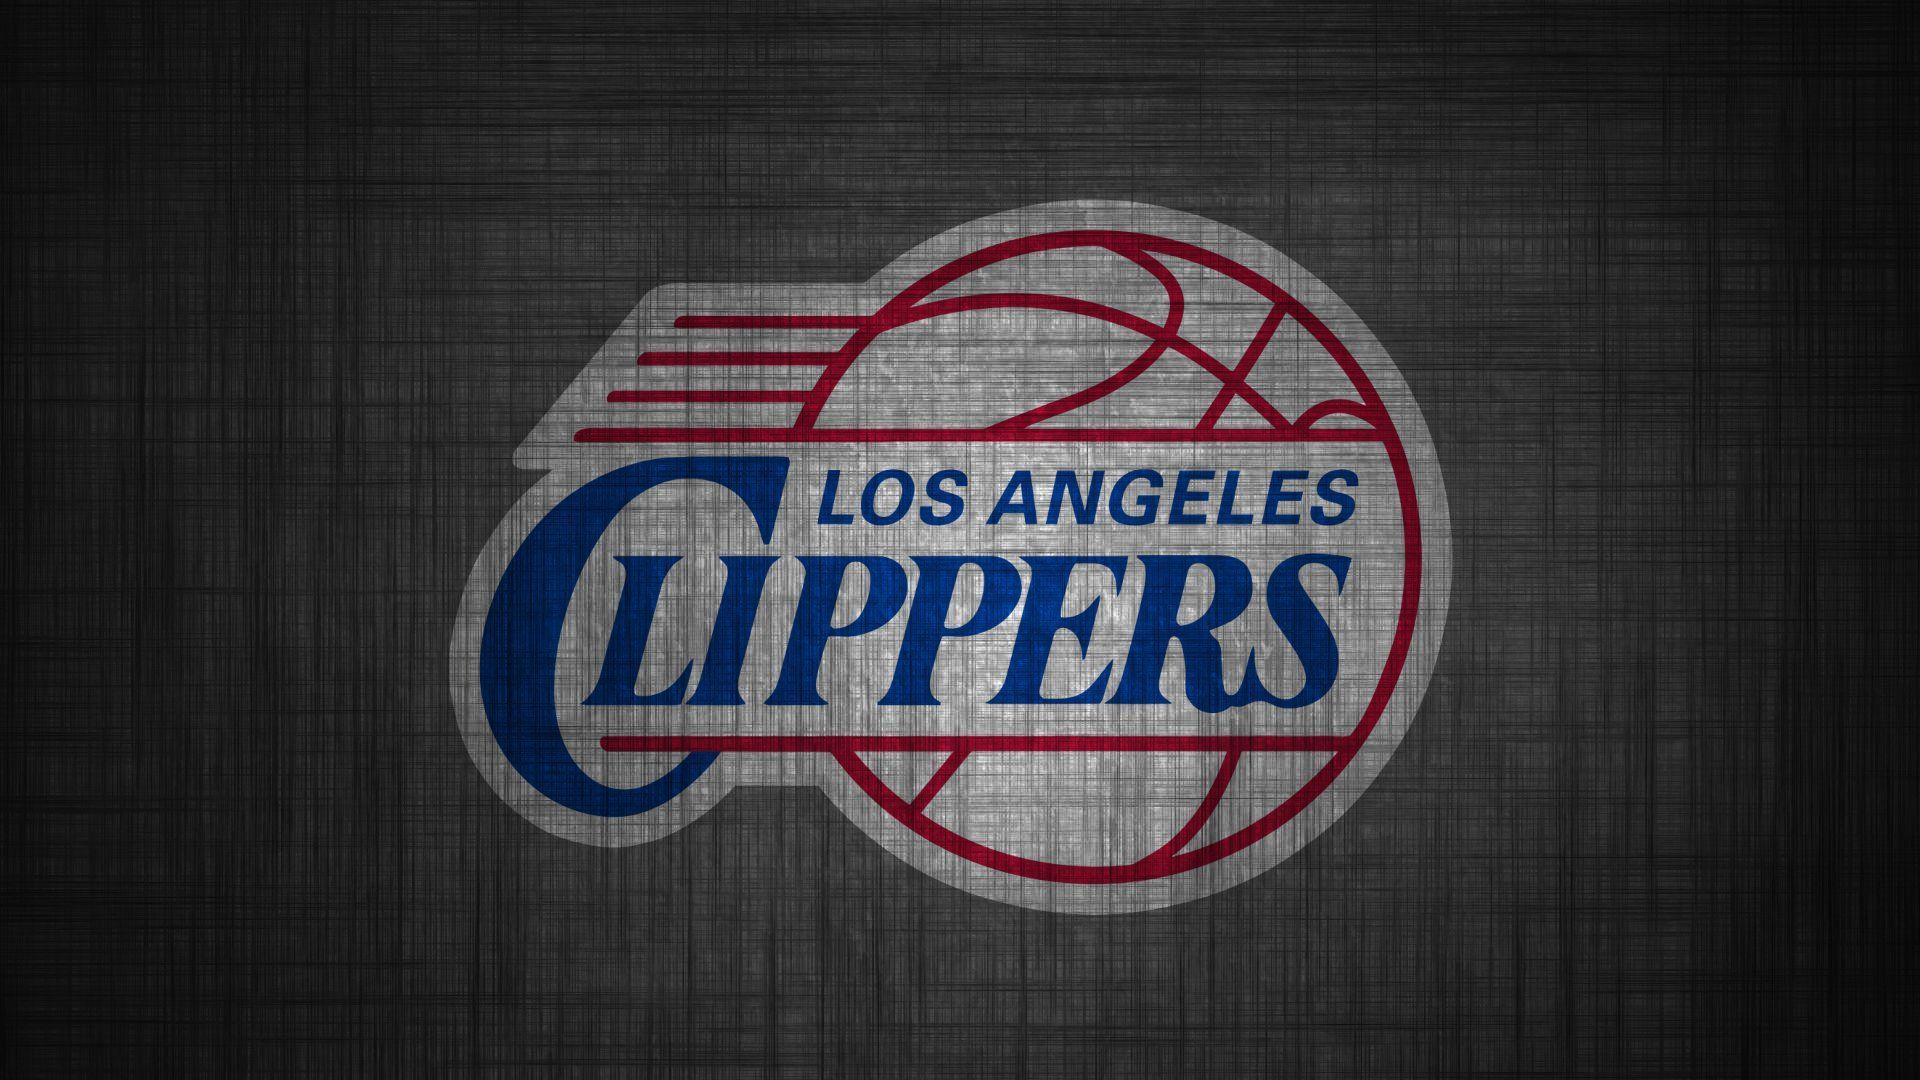 los angeles clippers wallpapers HD